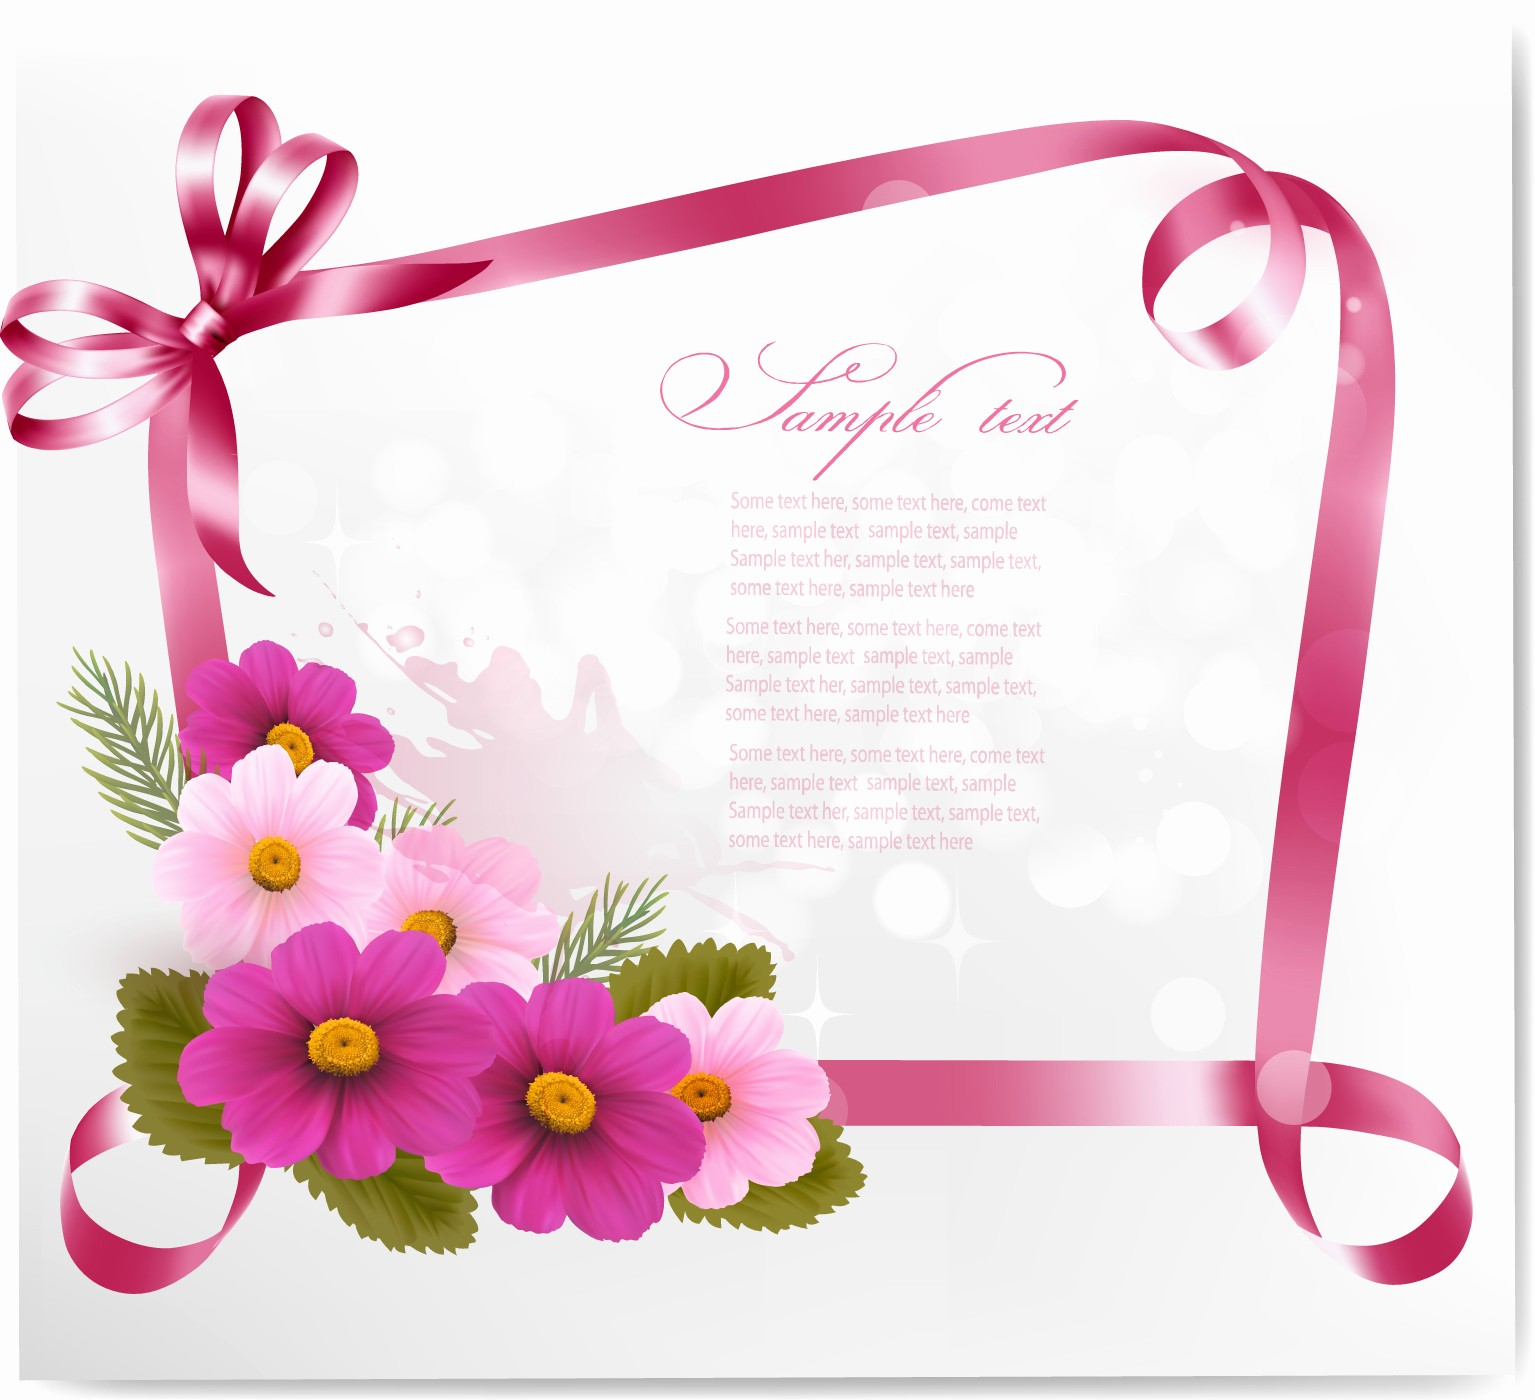 Greeting Cards Templates for Word New 14 Greeting Card Templates Excel Pdf formats